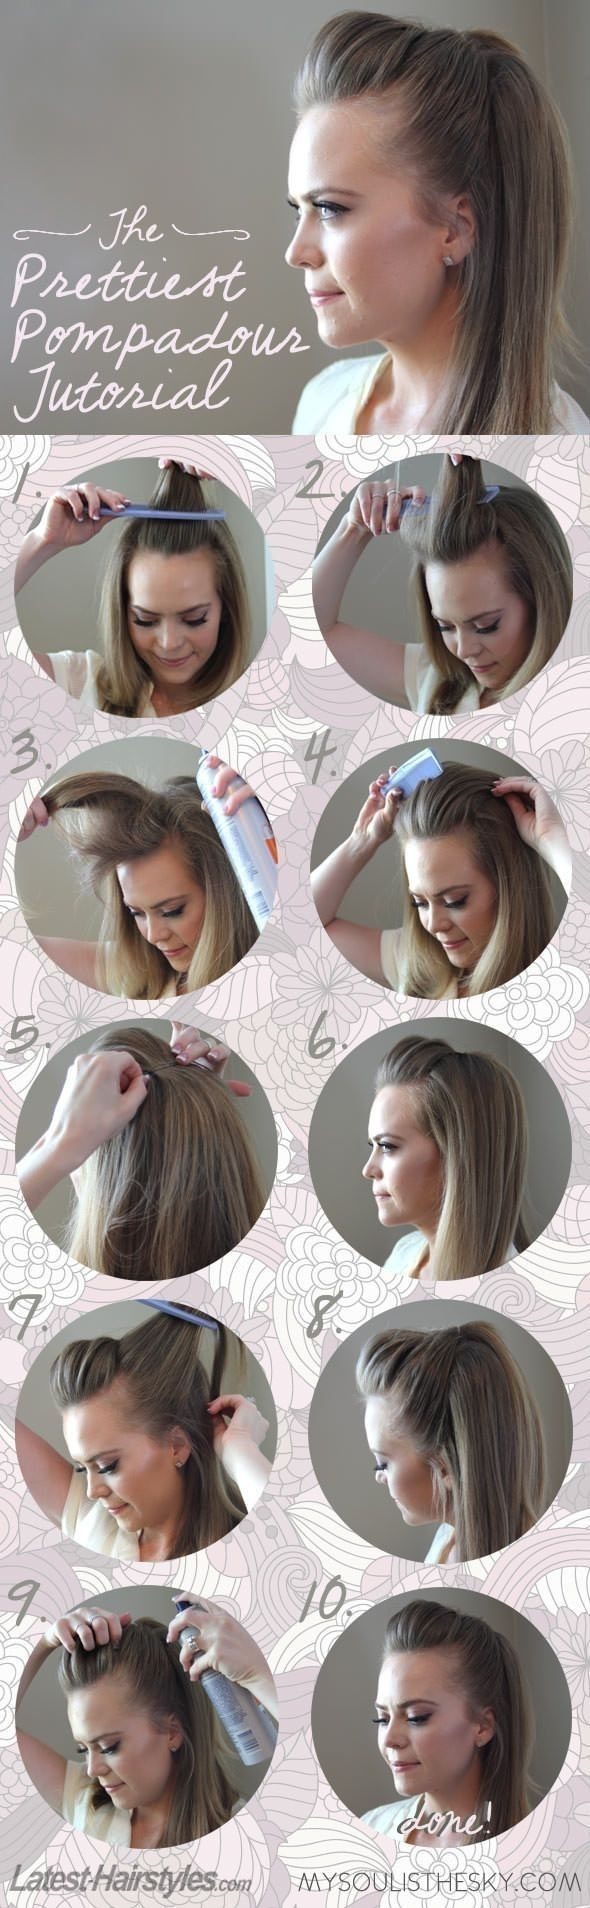 25 Stunning Hair Styles That You Can Do In Just 5 Minutes #bestkeptself